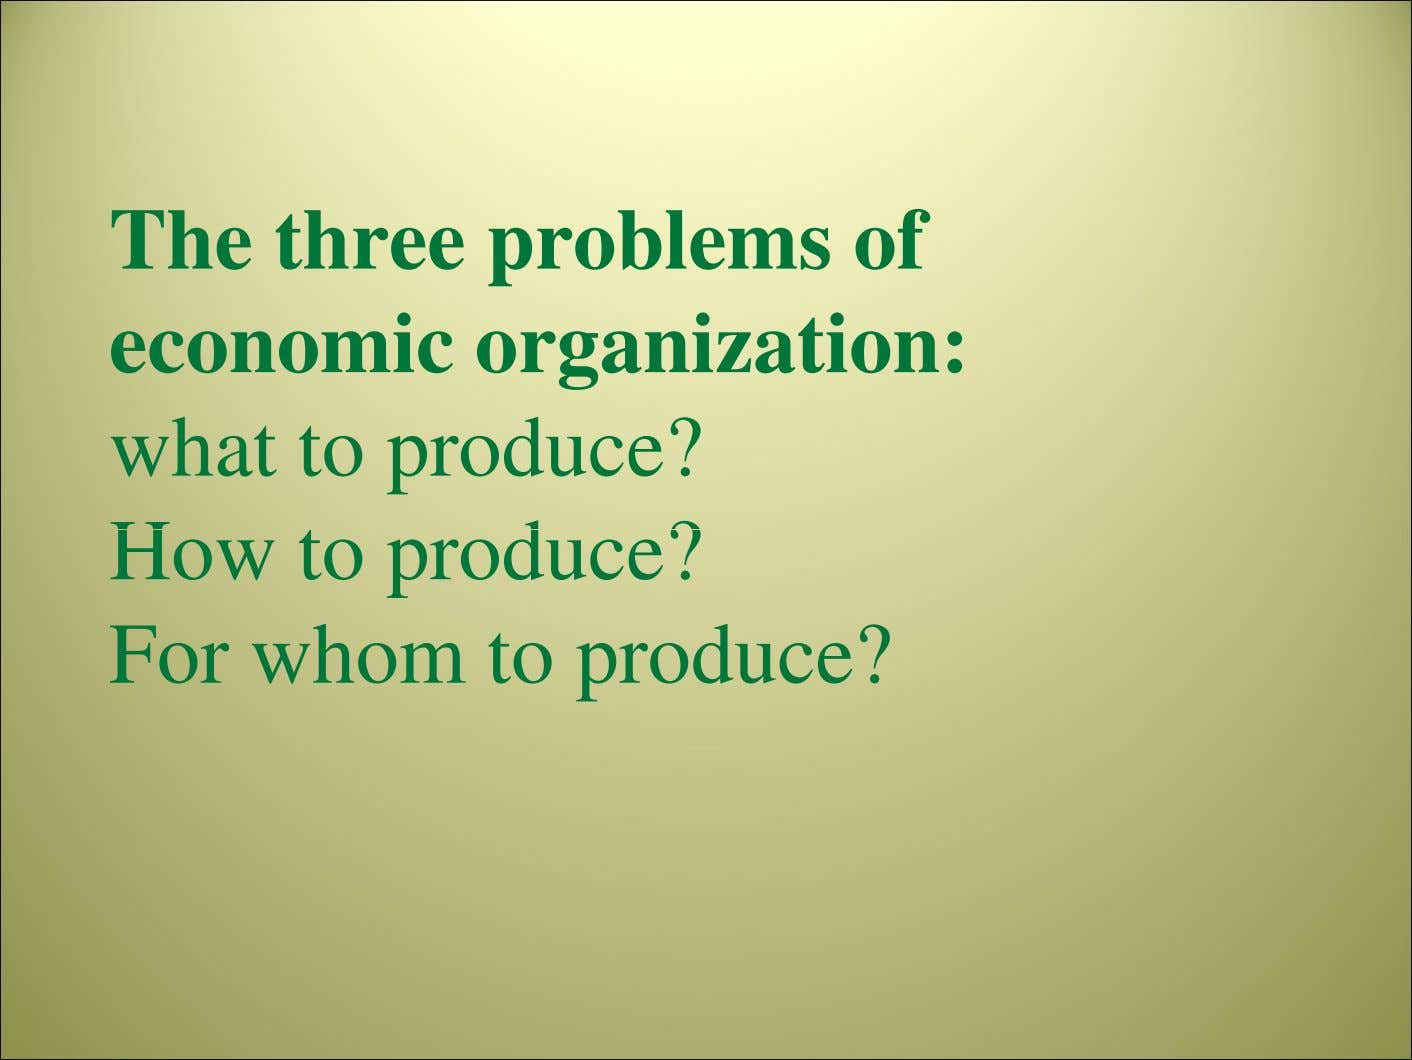 The three problems of economic organization: what to produce? How to produce? For whom to